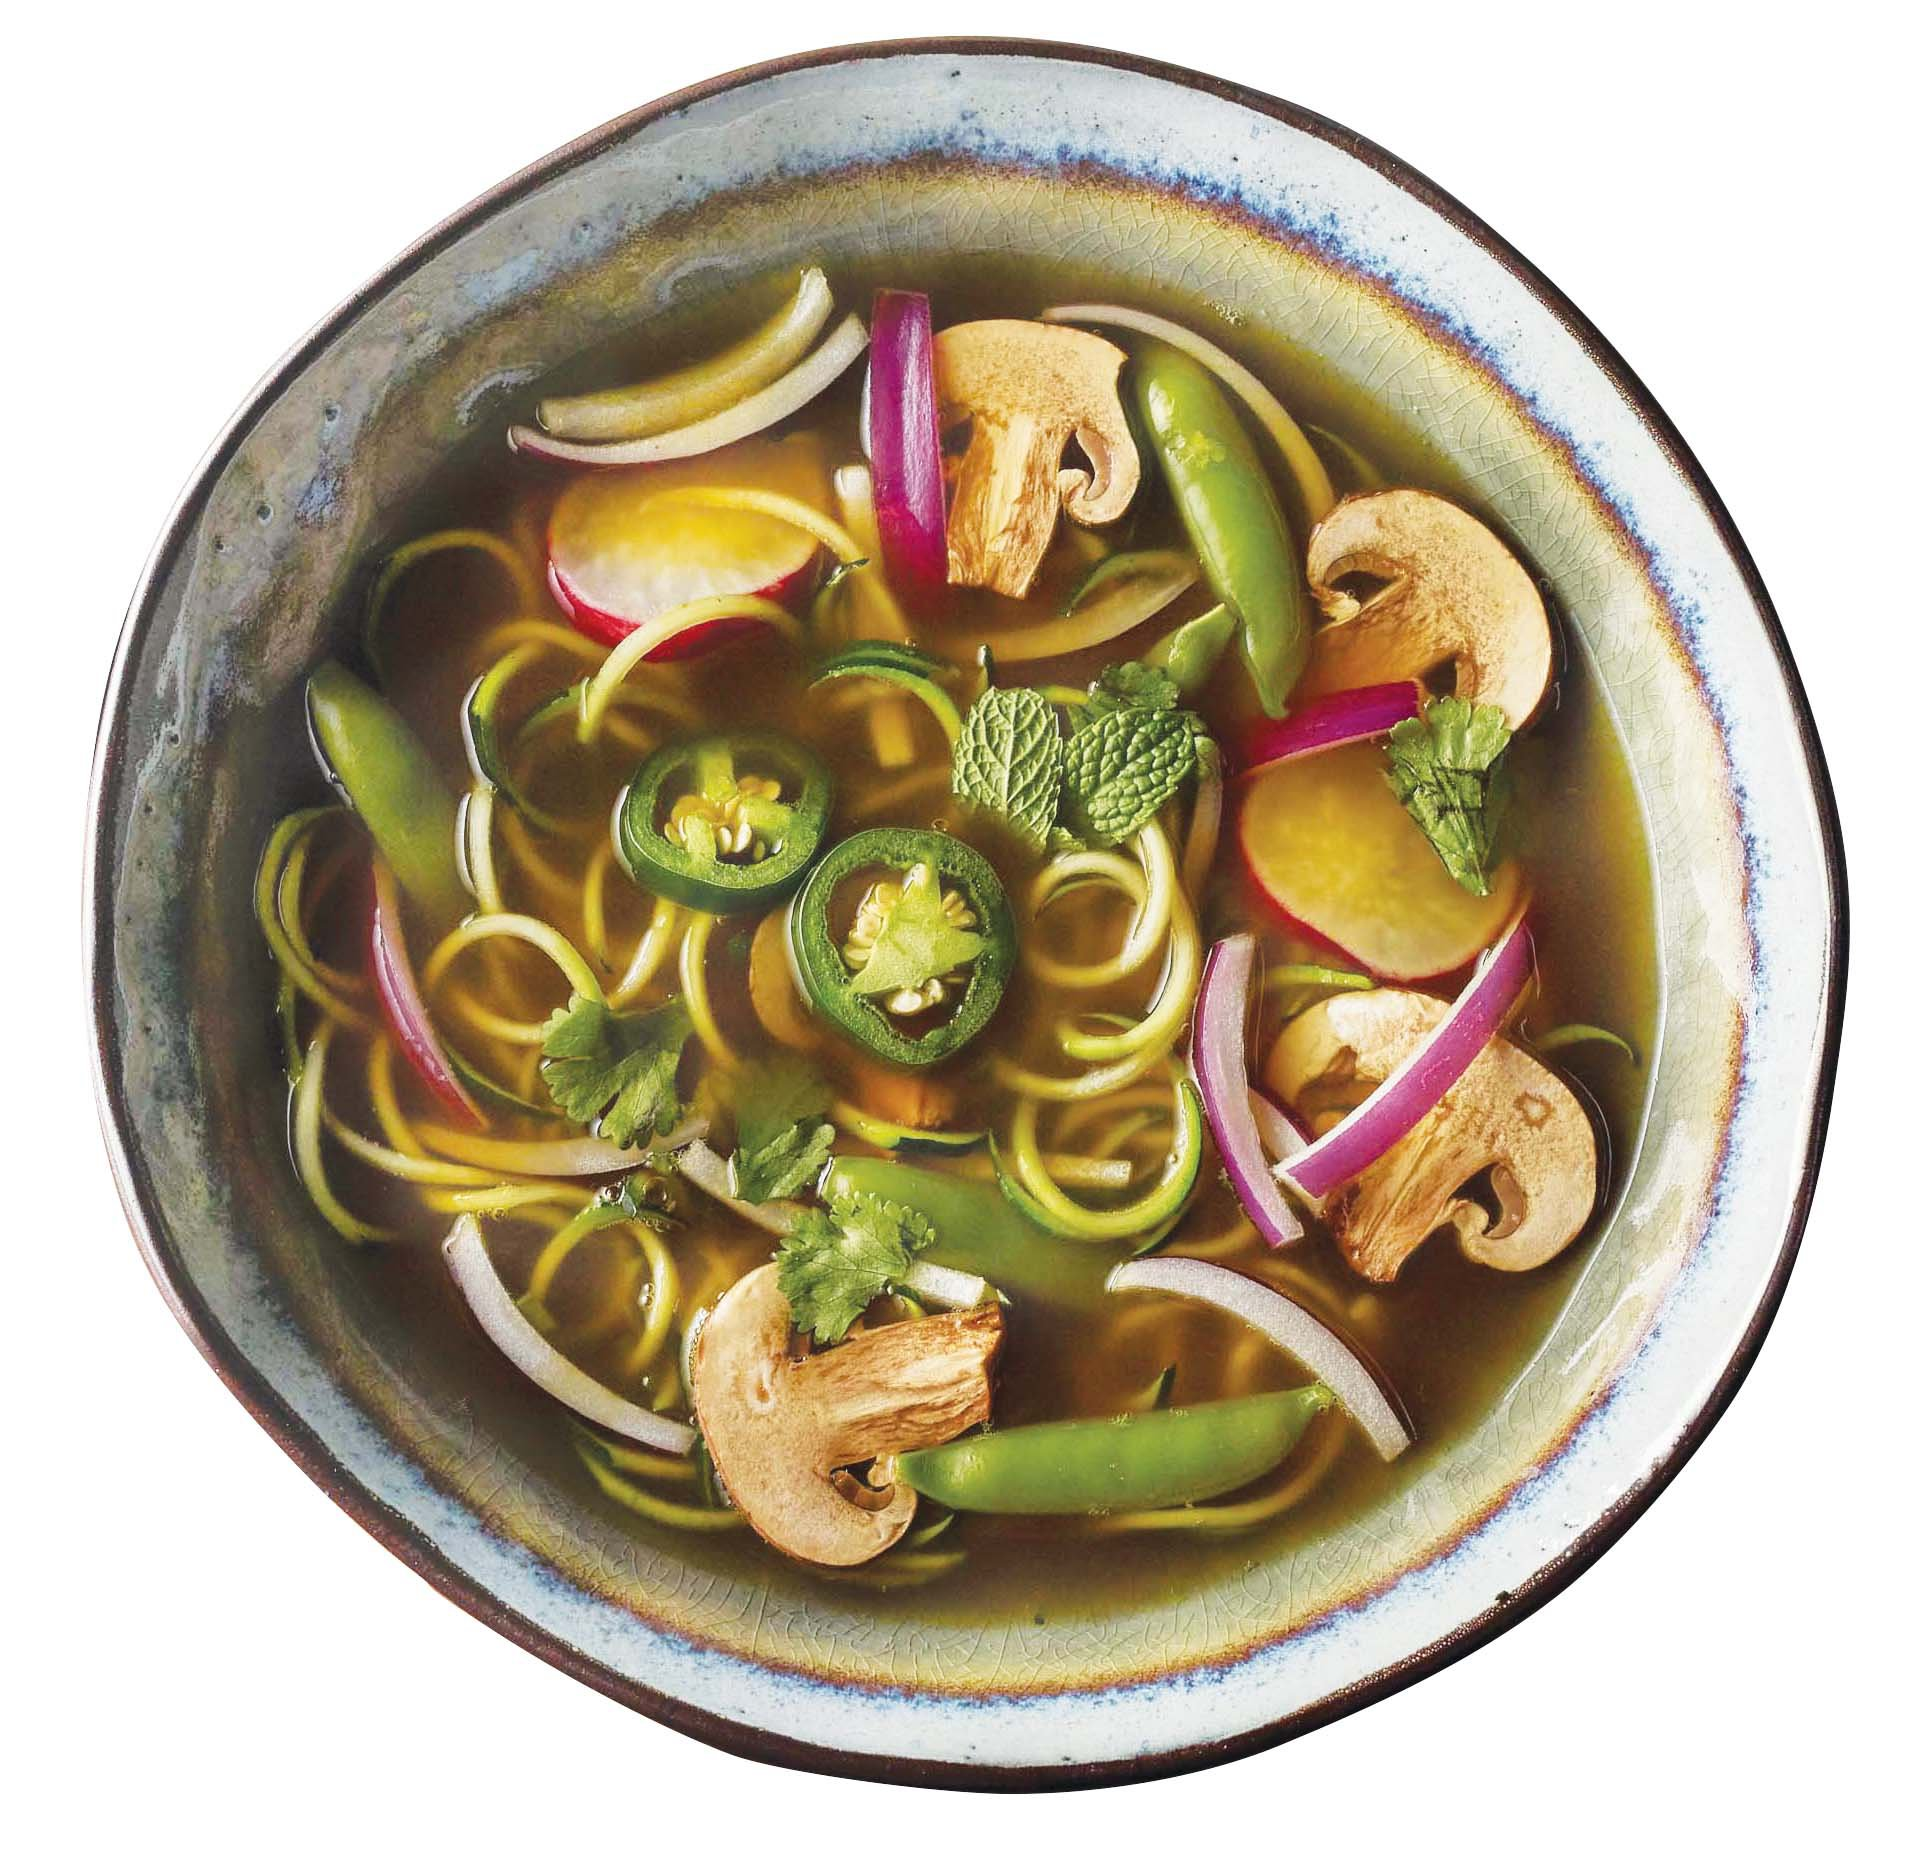 H-E-B Meal Simple Zucchini Spiral Pho Soup Kit - Shop Meal Kits at ...